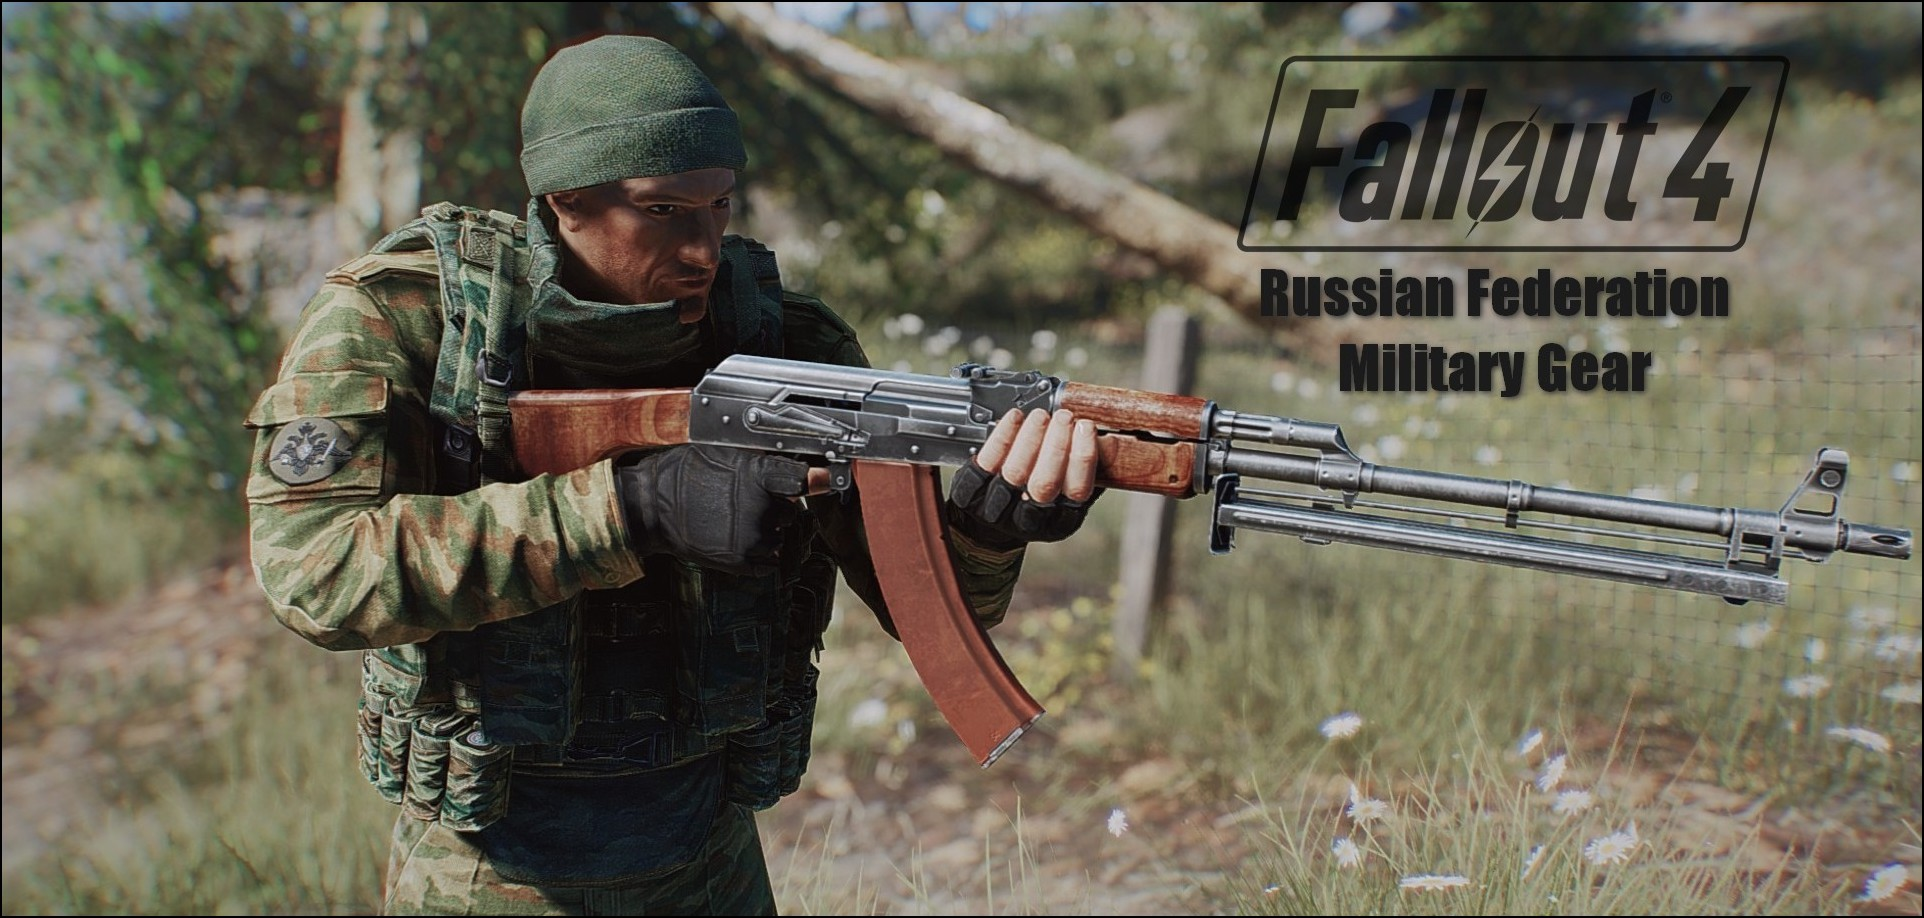 Russian Federation Military Gear Fallout 4